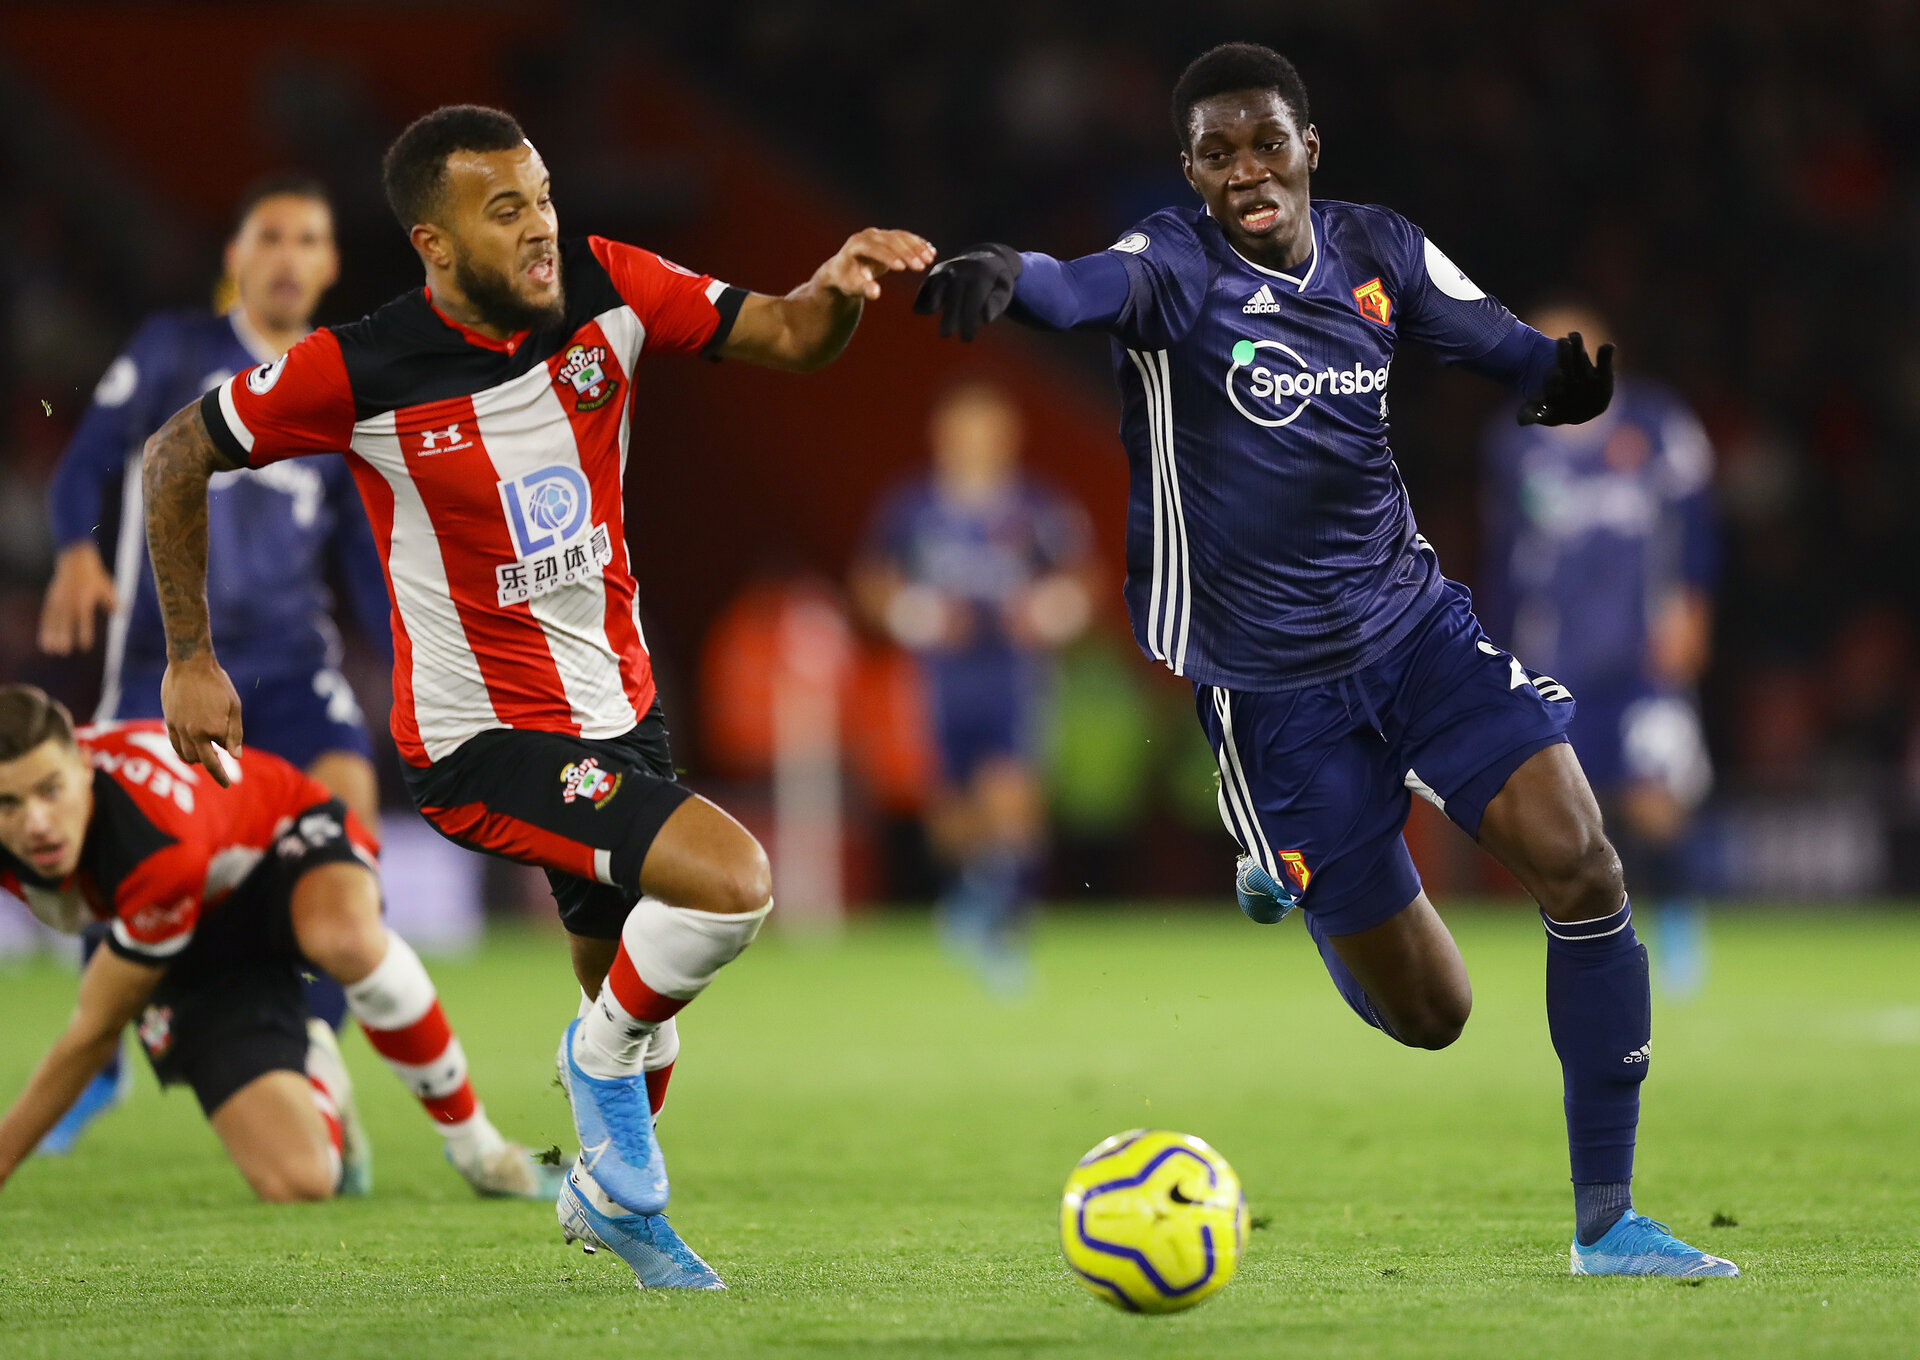 SOUTHAMPTON, ENGLAND - NOVEMBER 30:  Ismaila Sarr of Watford and Ryan Bertrand of Southampton battle for posession during the Premier League match between Southampton FC and Watford FC at St Mary's Stadium on November 30, 2019 in Southampton, United Kingdom. (Photo by Richard Heathcote/Getty Images)